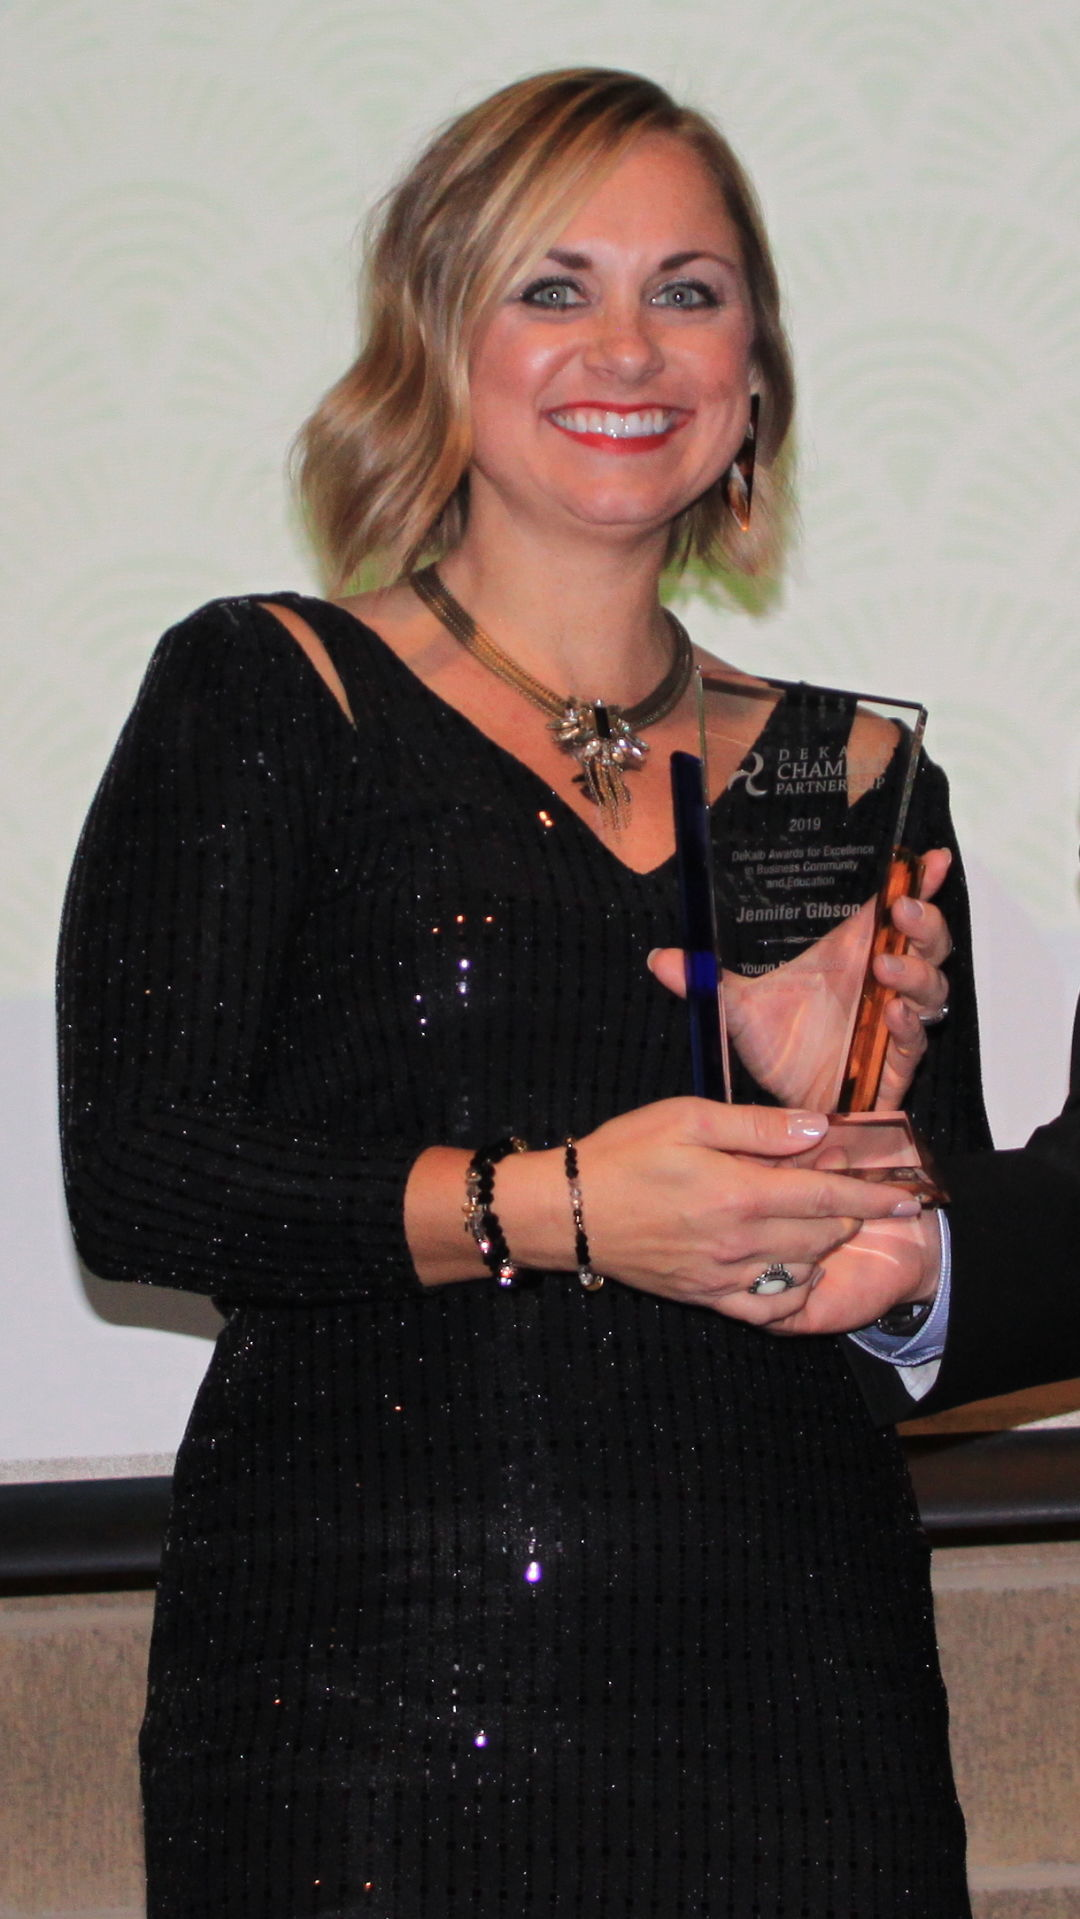 Jenn Gibson Young Professional of the Year